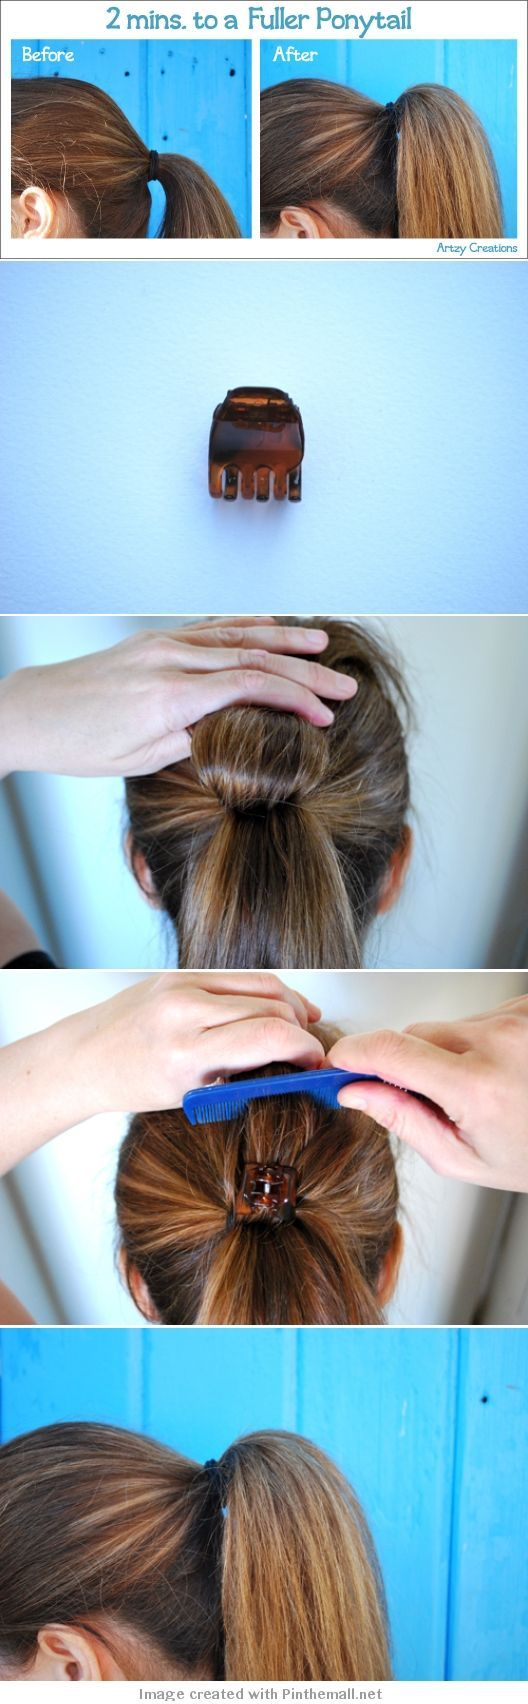 Create a fuller ponytail by using using miniature hair clips and teasing, for people with thin hair. #fullerponytail Create a fuller ponytail by using using miniature hair clips and teasing, for people with thin hair. #fullerponytail